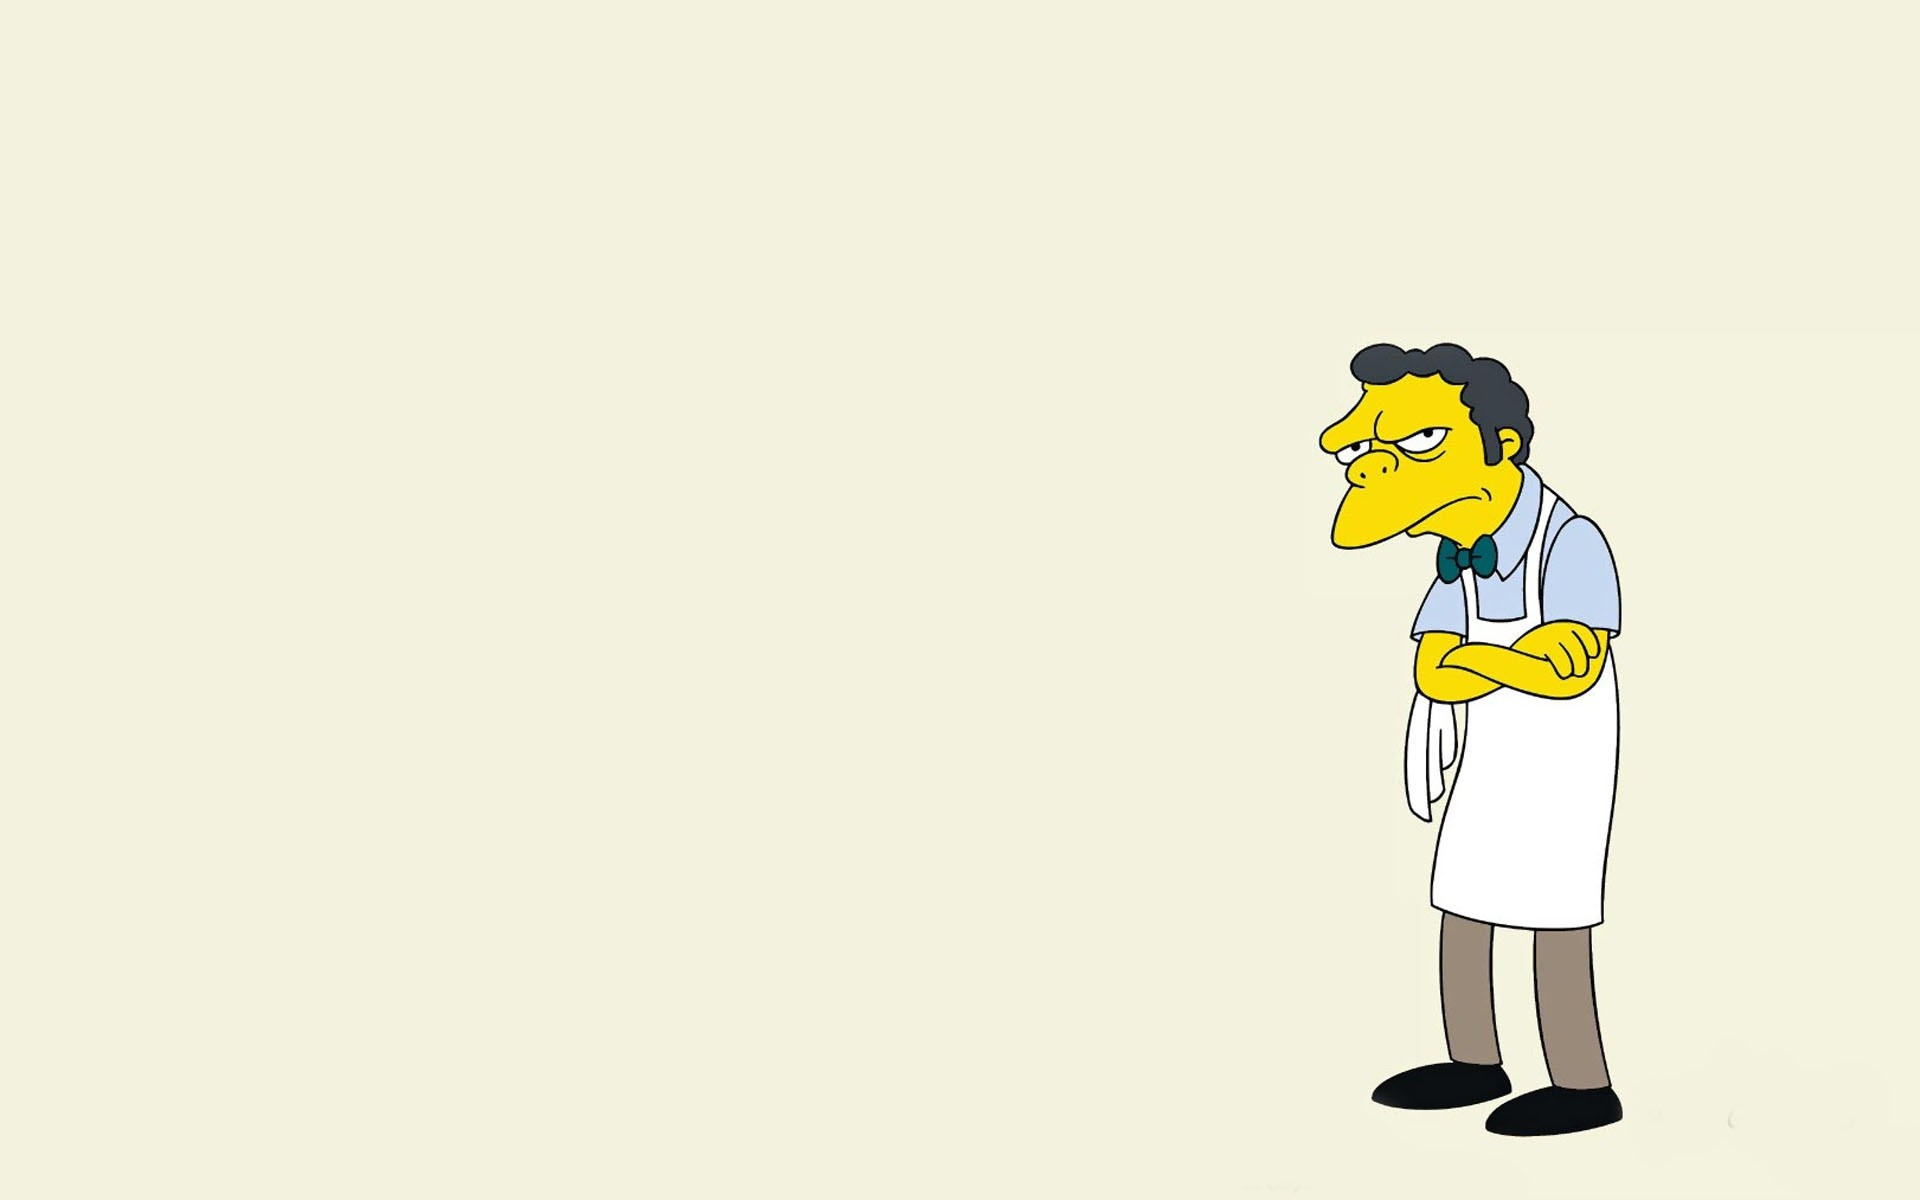 1920x1200 The Simpsons Free Backgrounds - Wallpaper, High Definition .